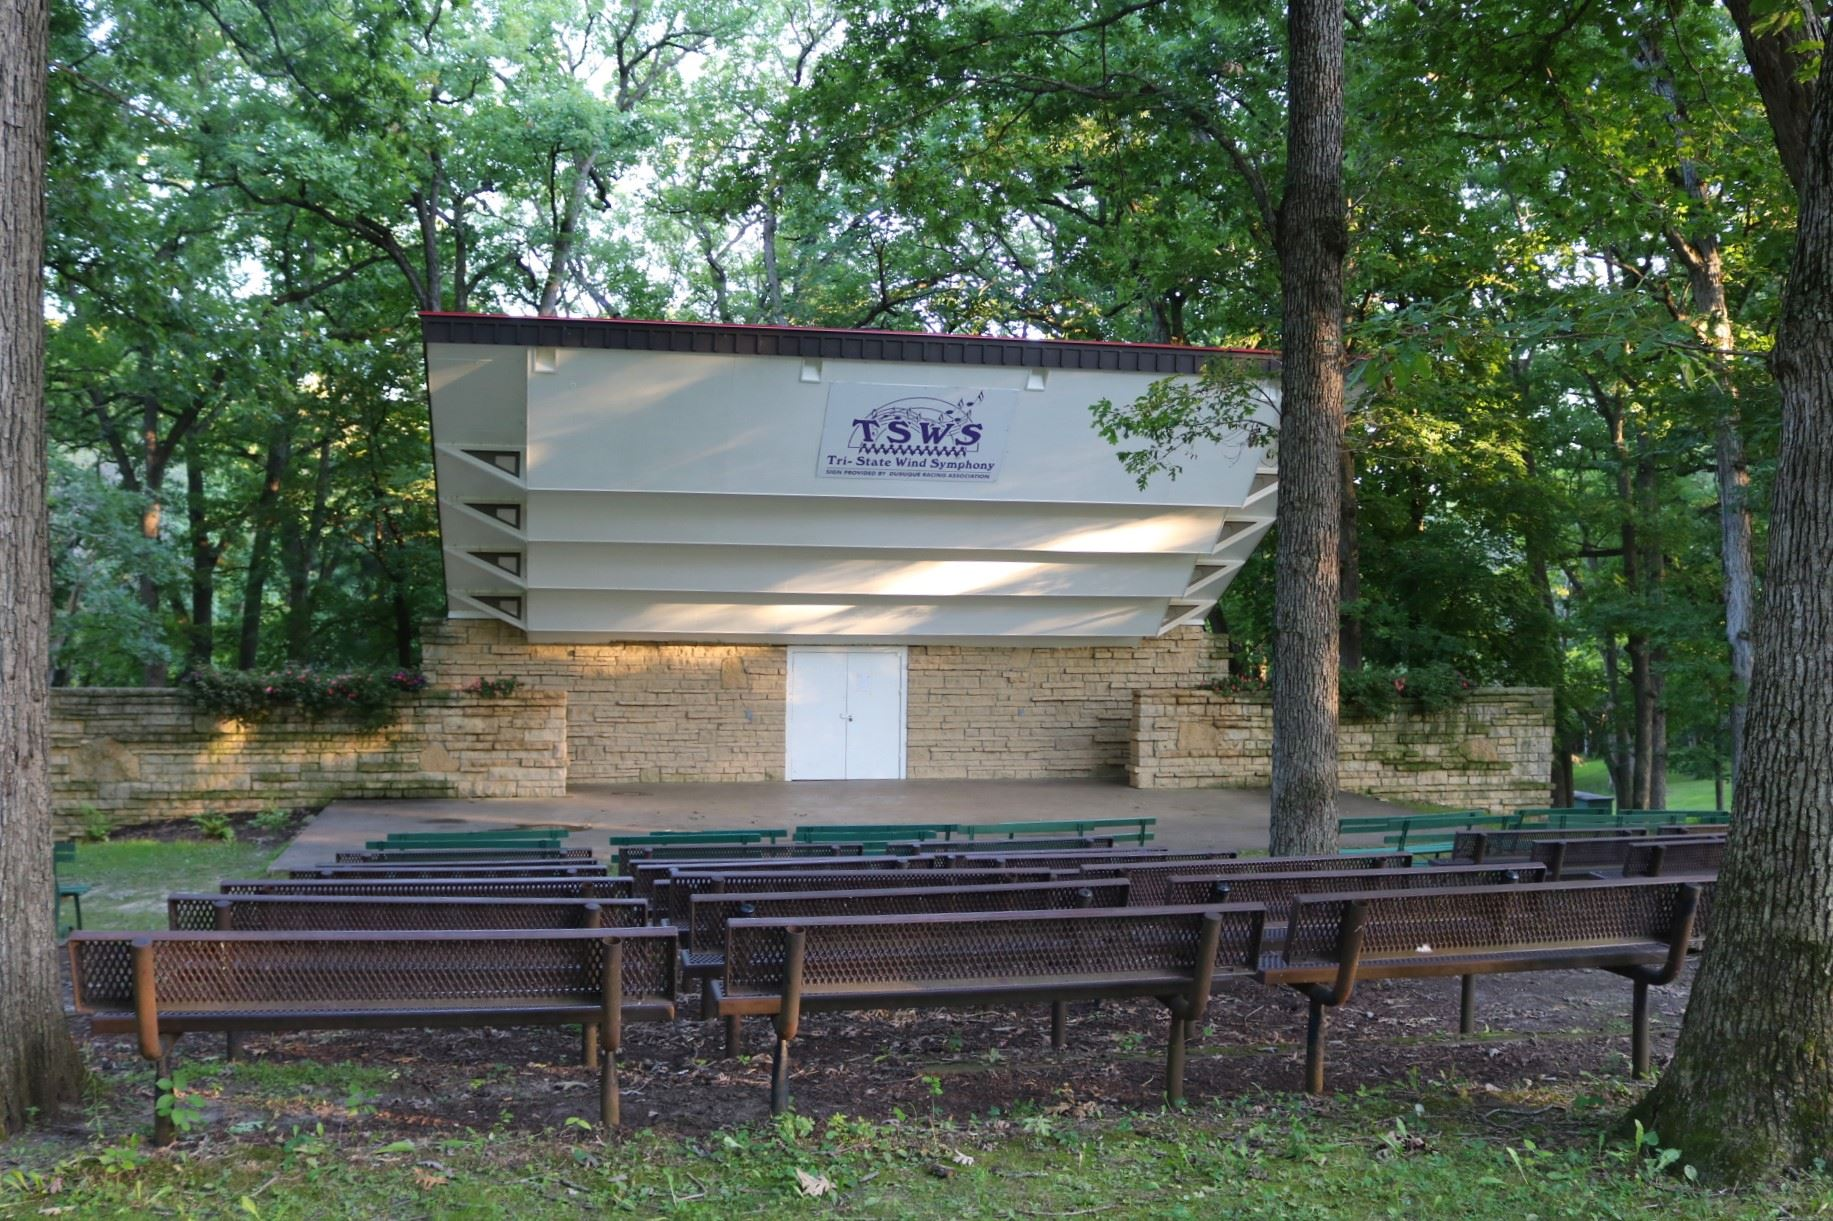 Band Shell seating: 48, 6' benches; Price: $70.00. Amphitheater style seating with a large cement